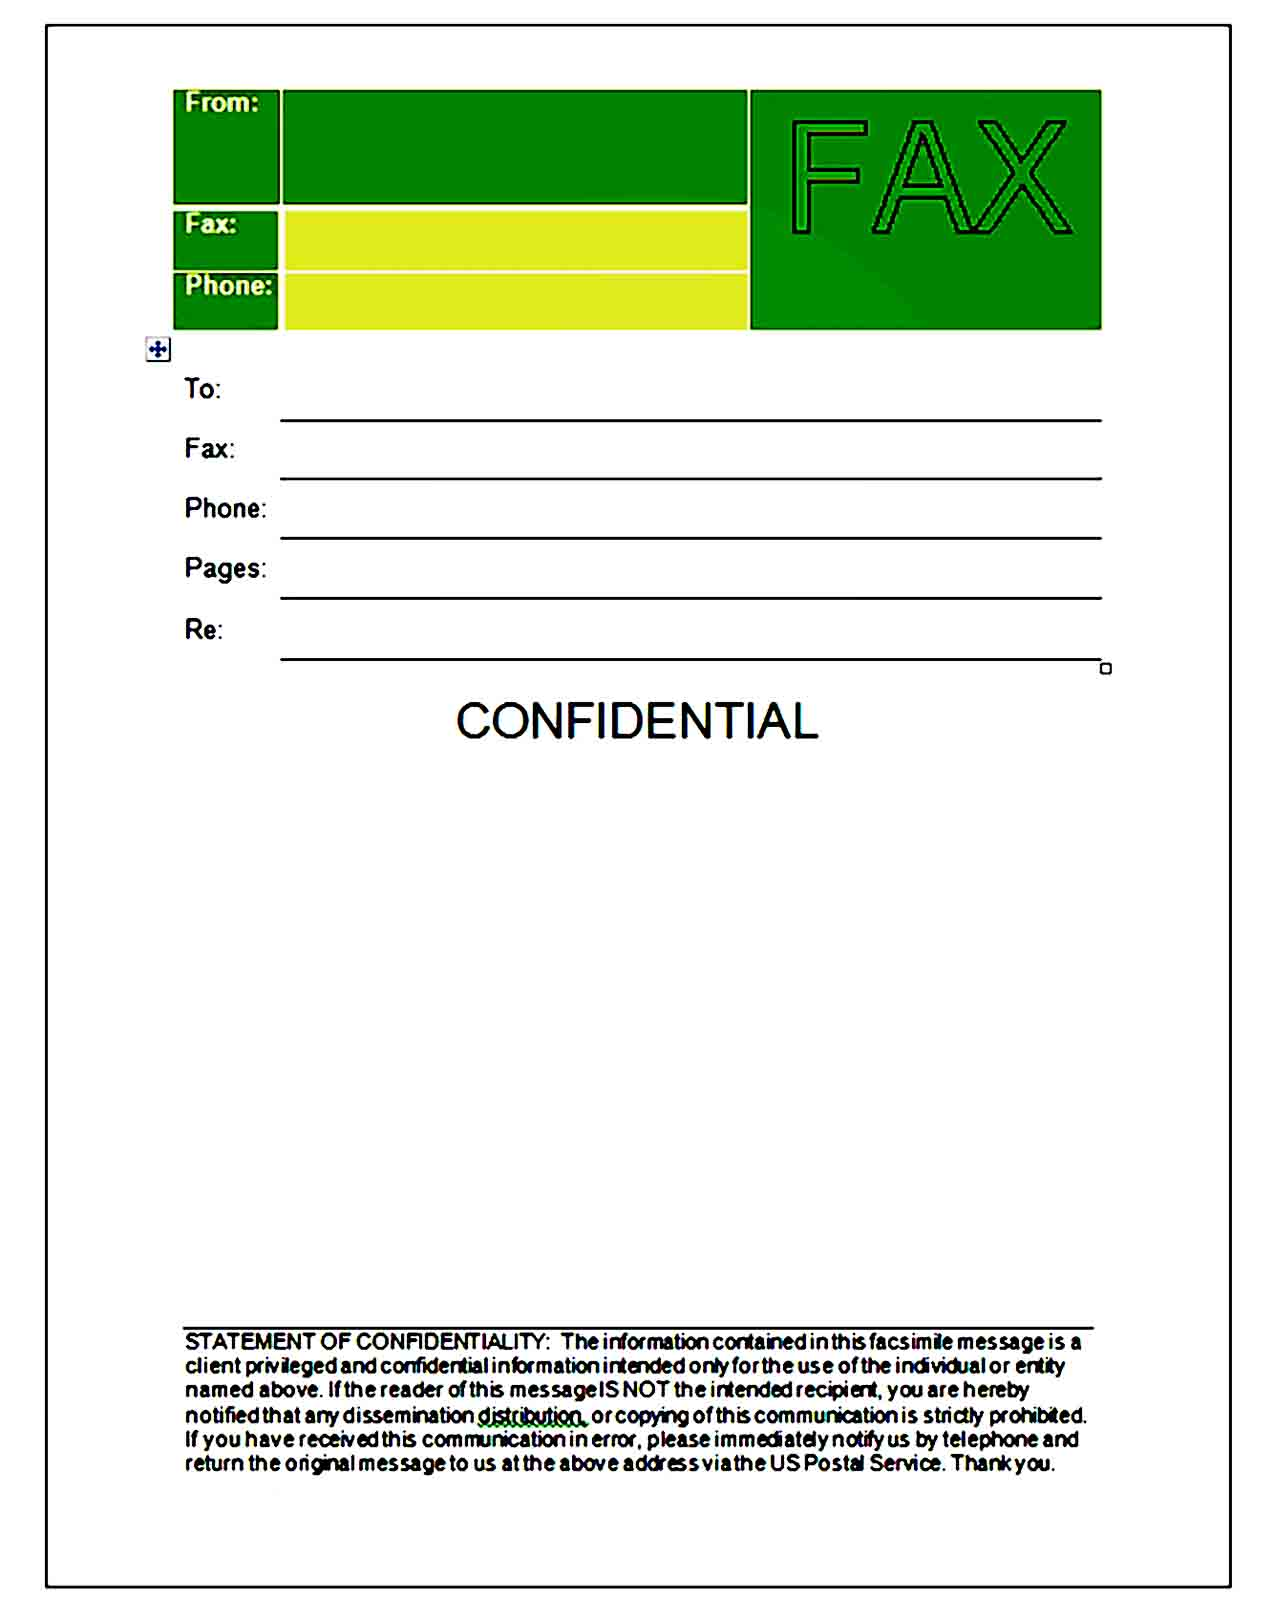 Fax Cover Sheet Template 02